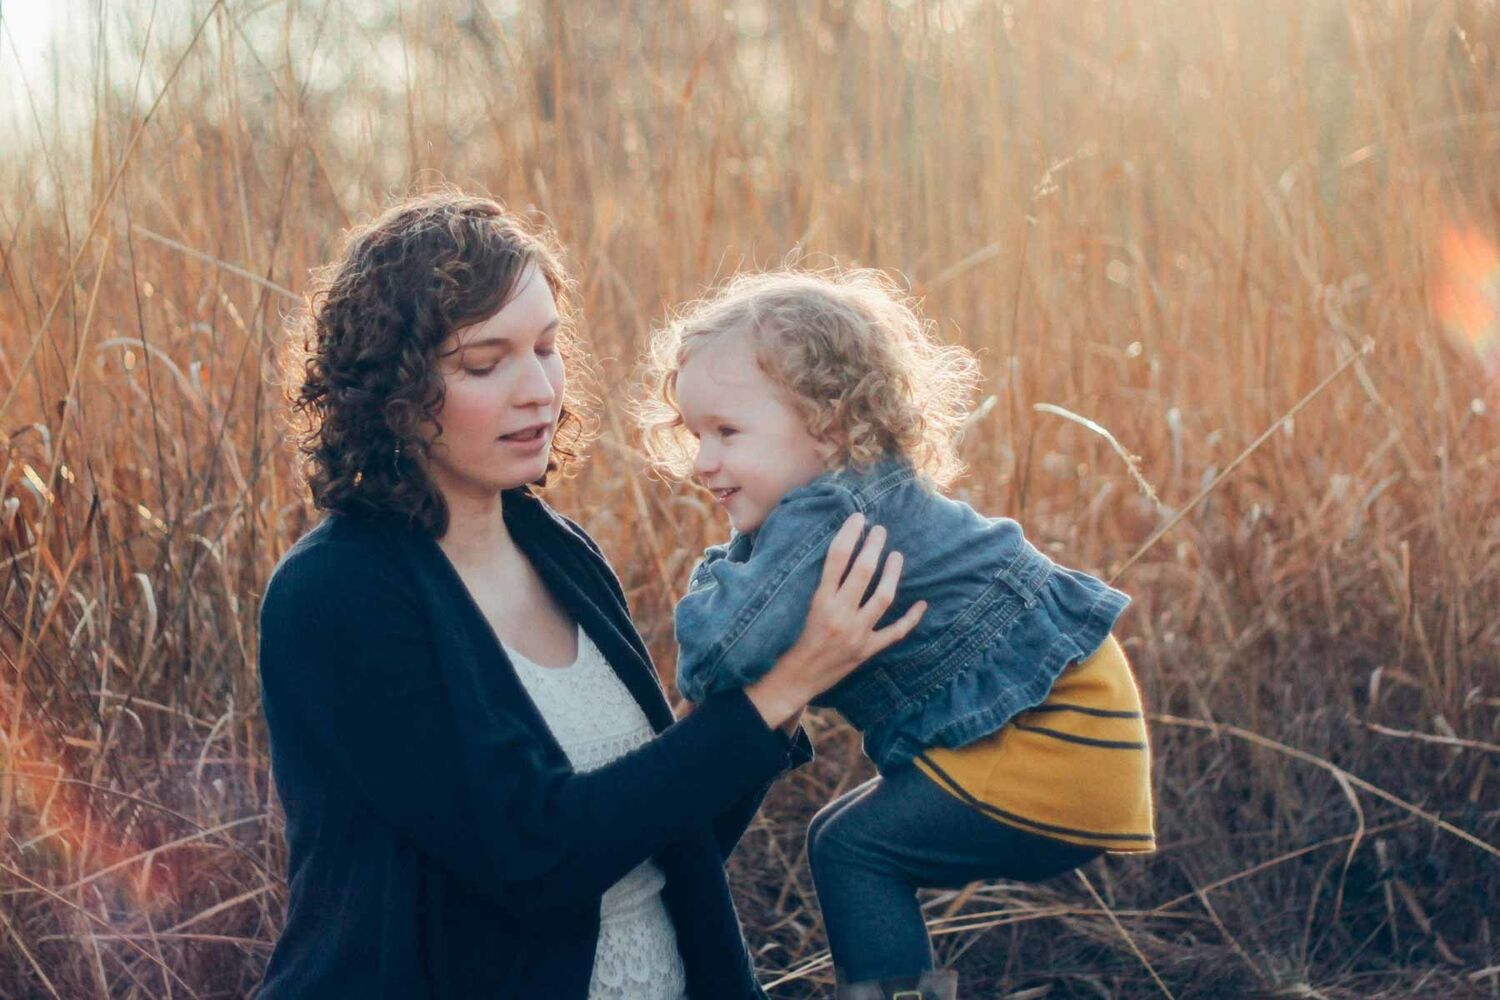 Mother Holding Young Child In Field Of Tall Dead Grass